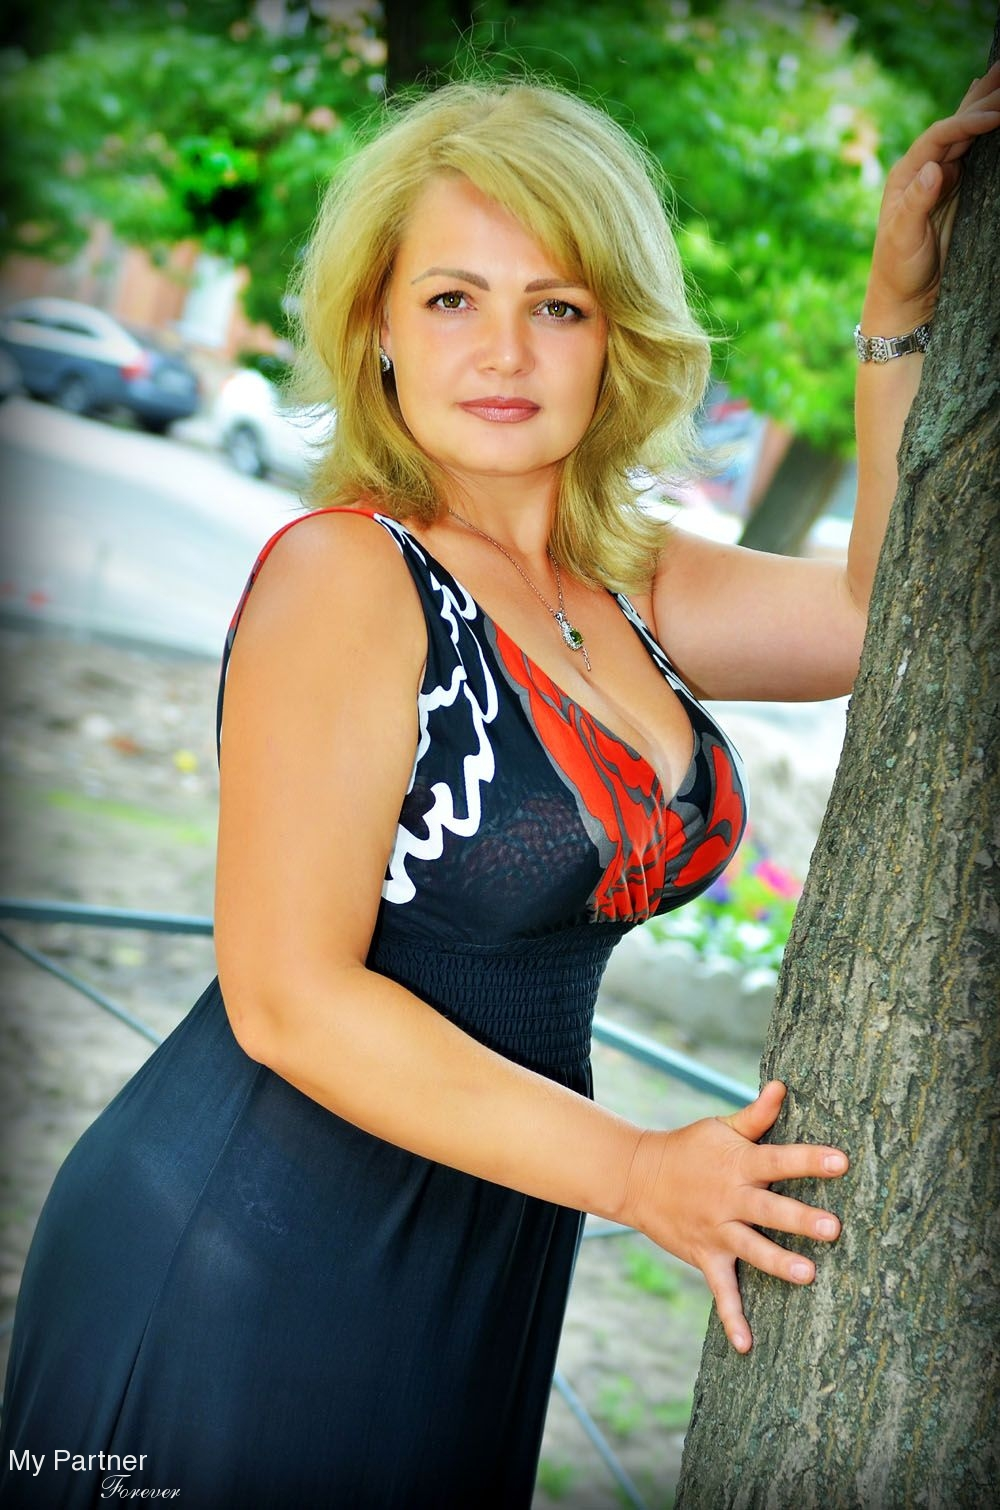 francestown divorced singles personals Meet your special person from the divorced dating community our divorced dating site is especially for divorced singles looking for a.